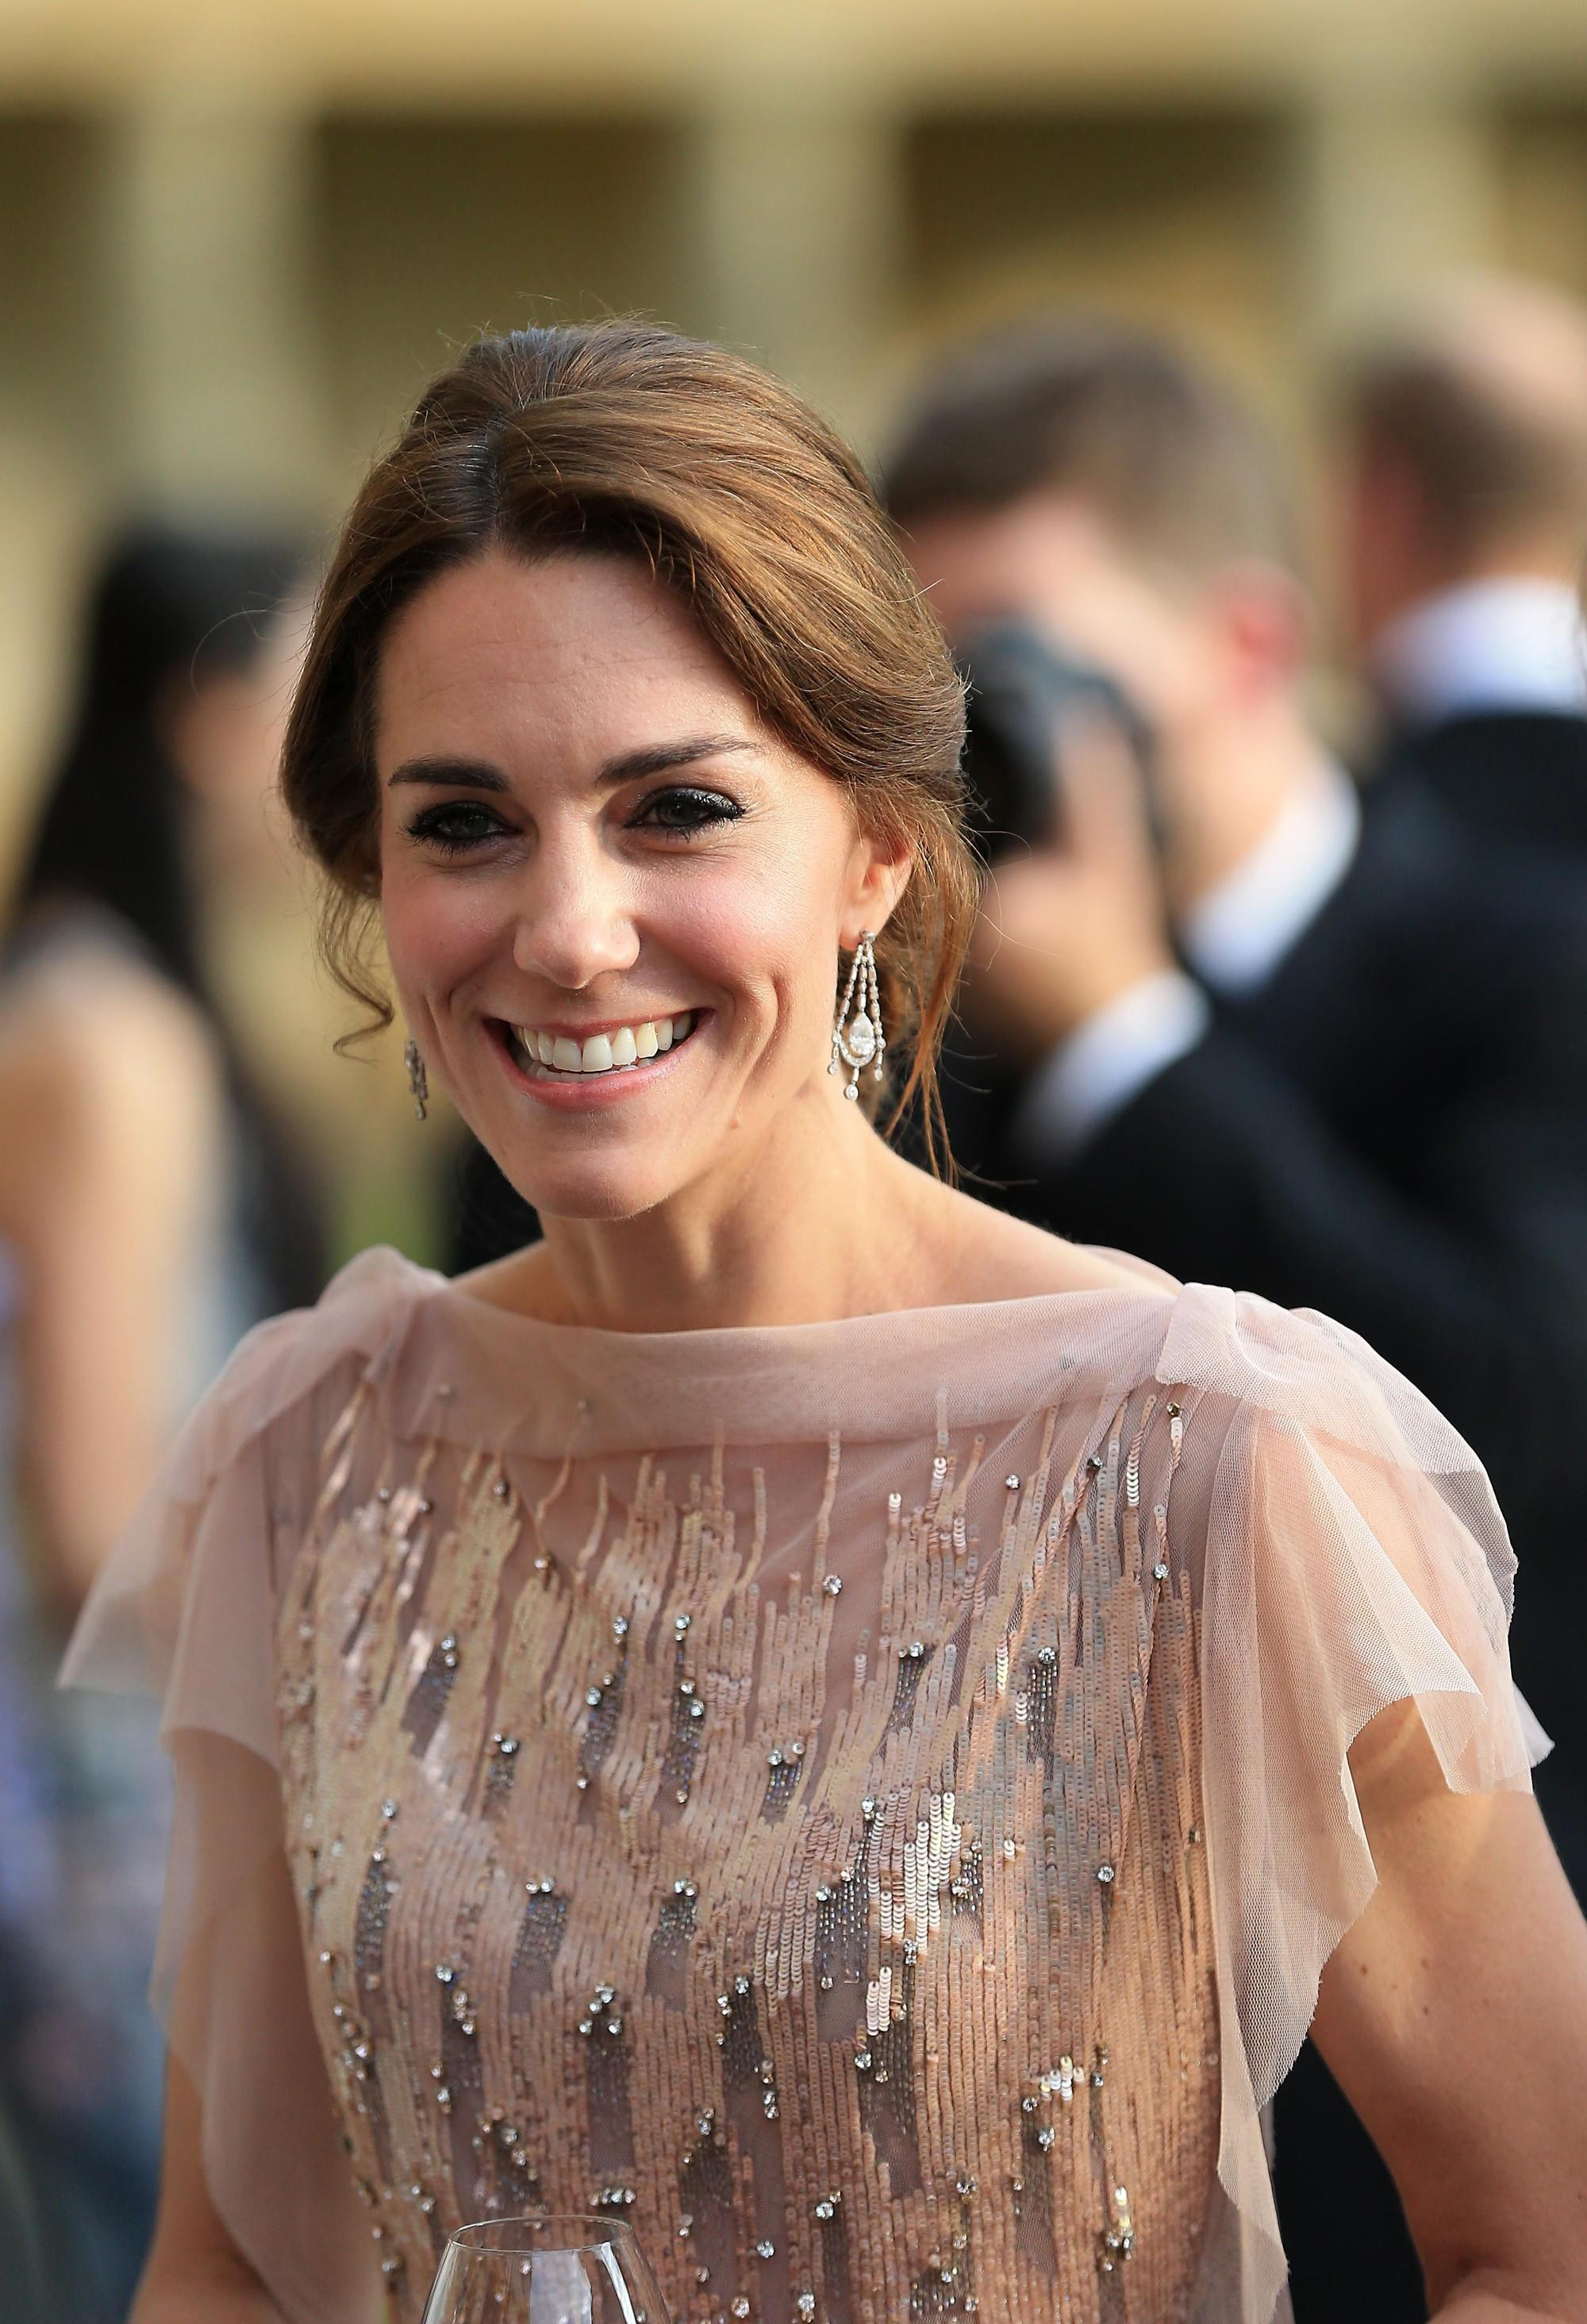 Kate Middleton's Latest Outfit Will Make You Love Her Even More!